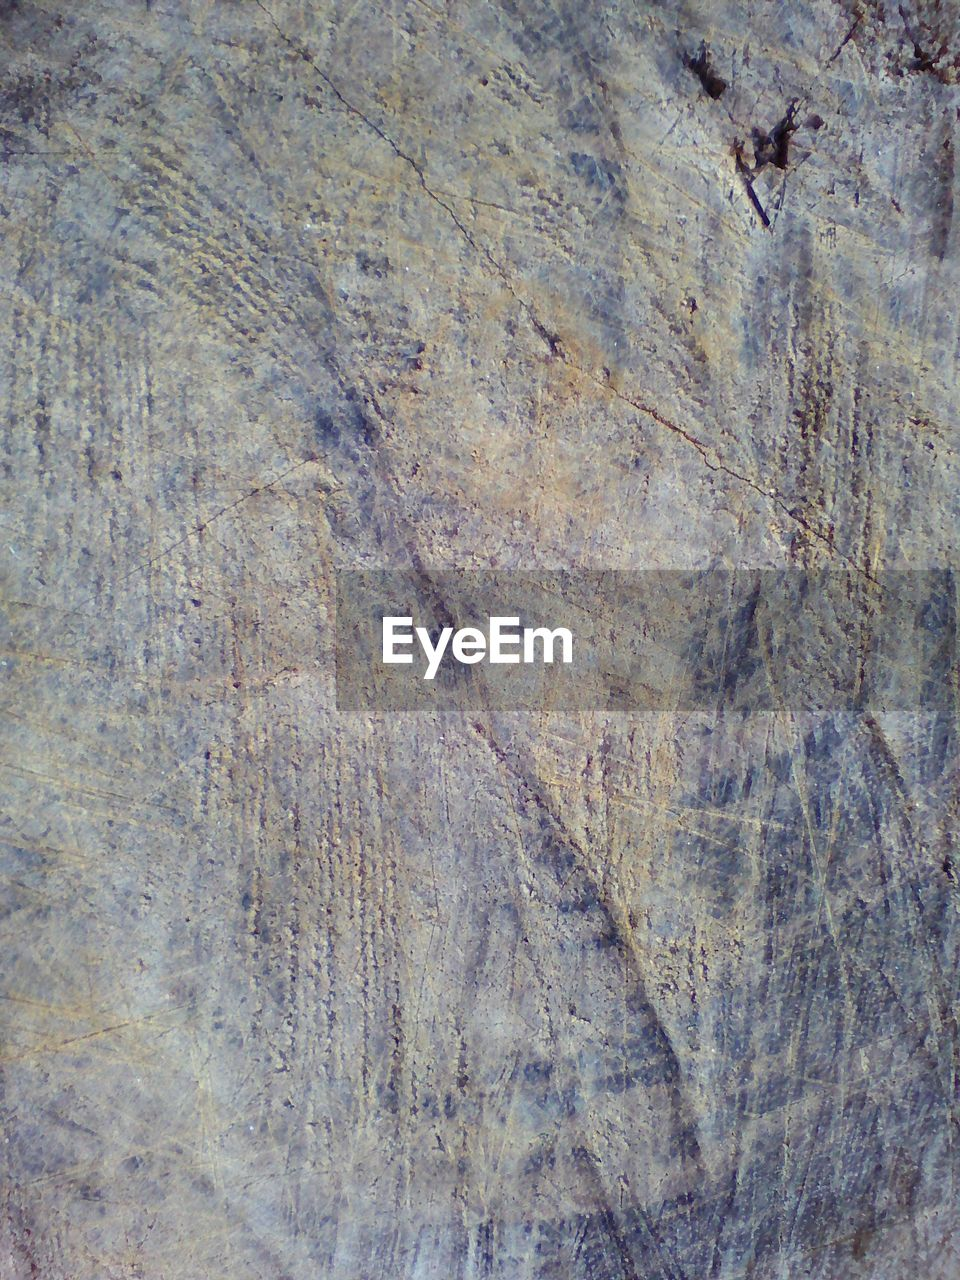 backgrounds, rock - object, textured, pattern, marble, full frame, no people, nature, wallpaper, close-up, day, outdoors